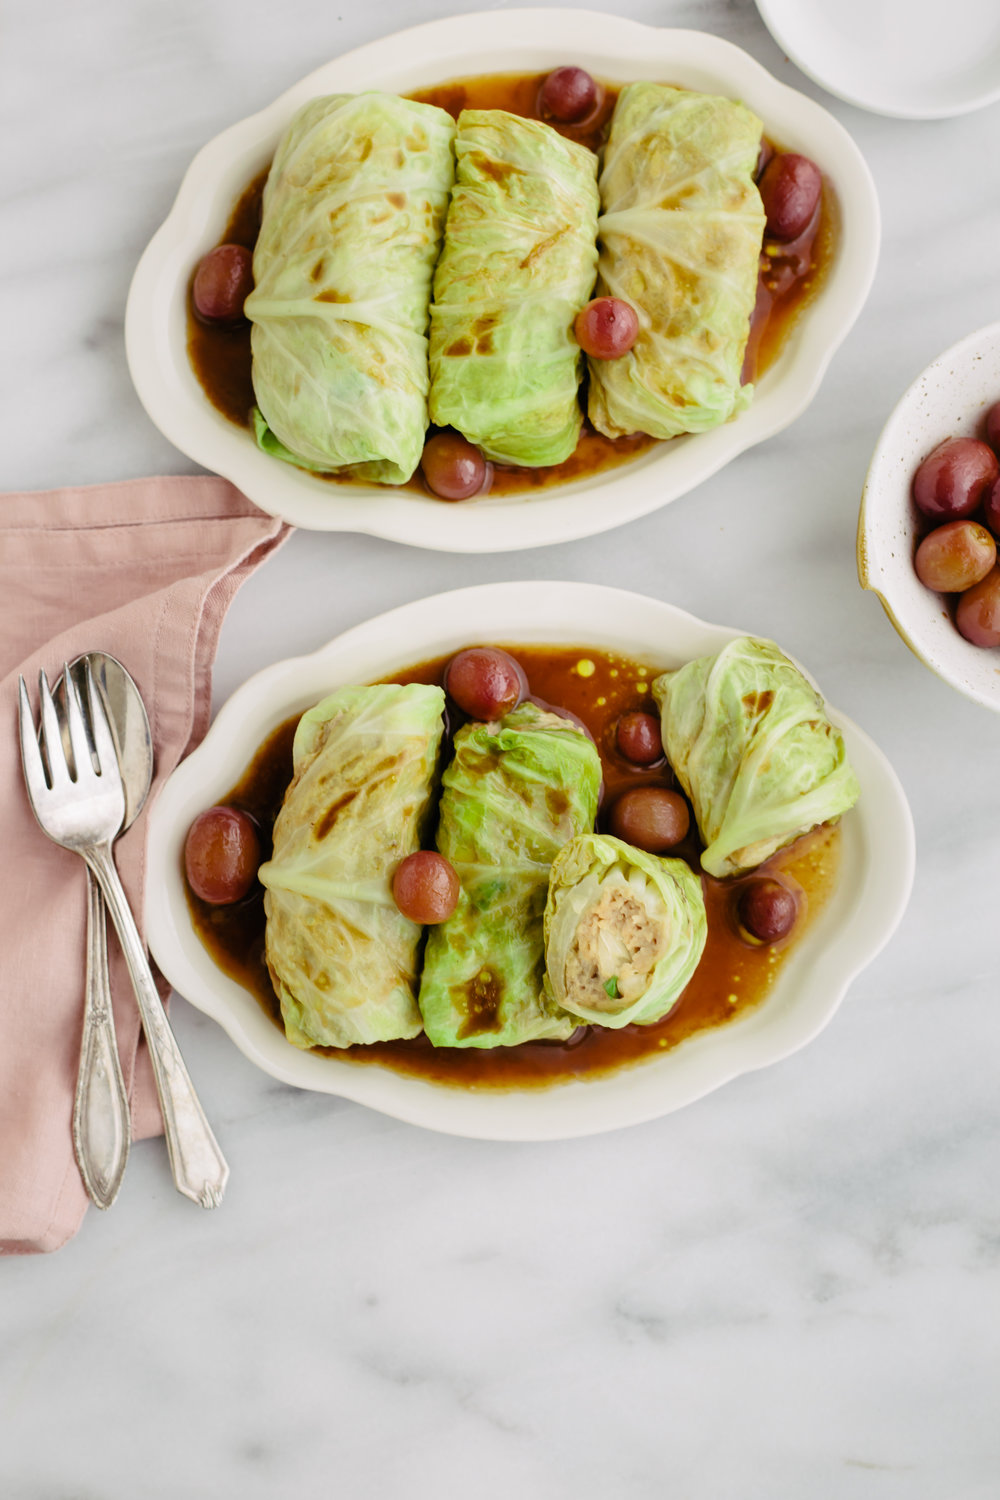 cabbage rolls with grapes1.jpg